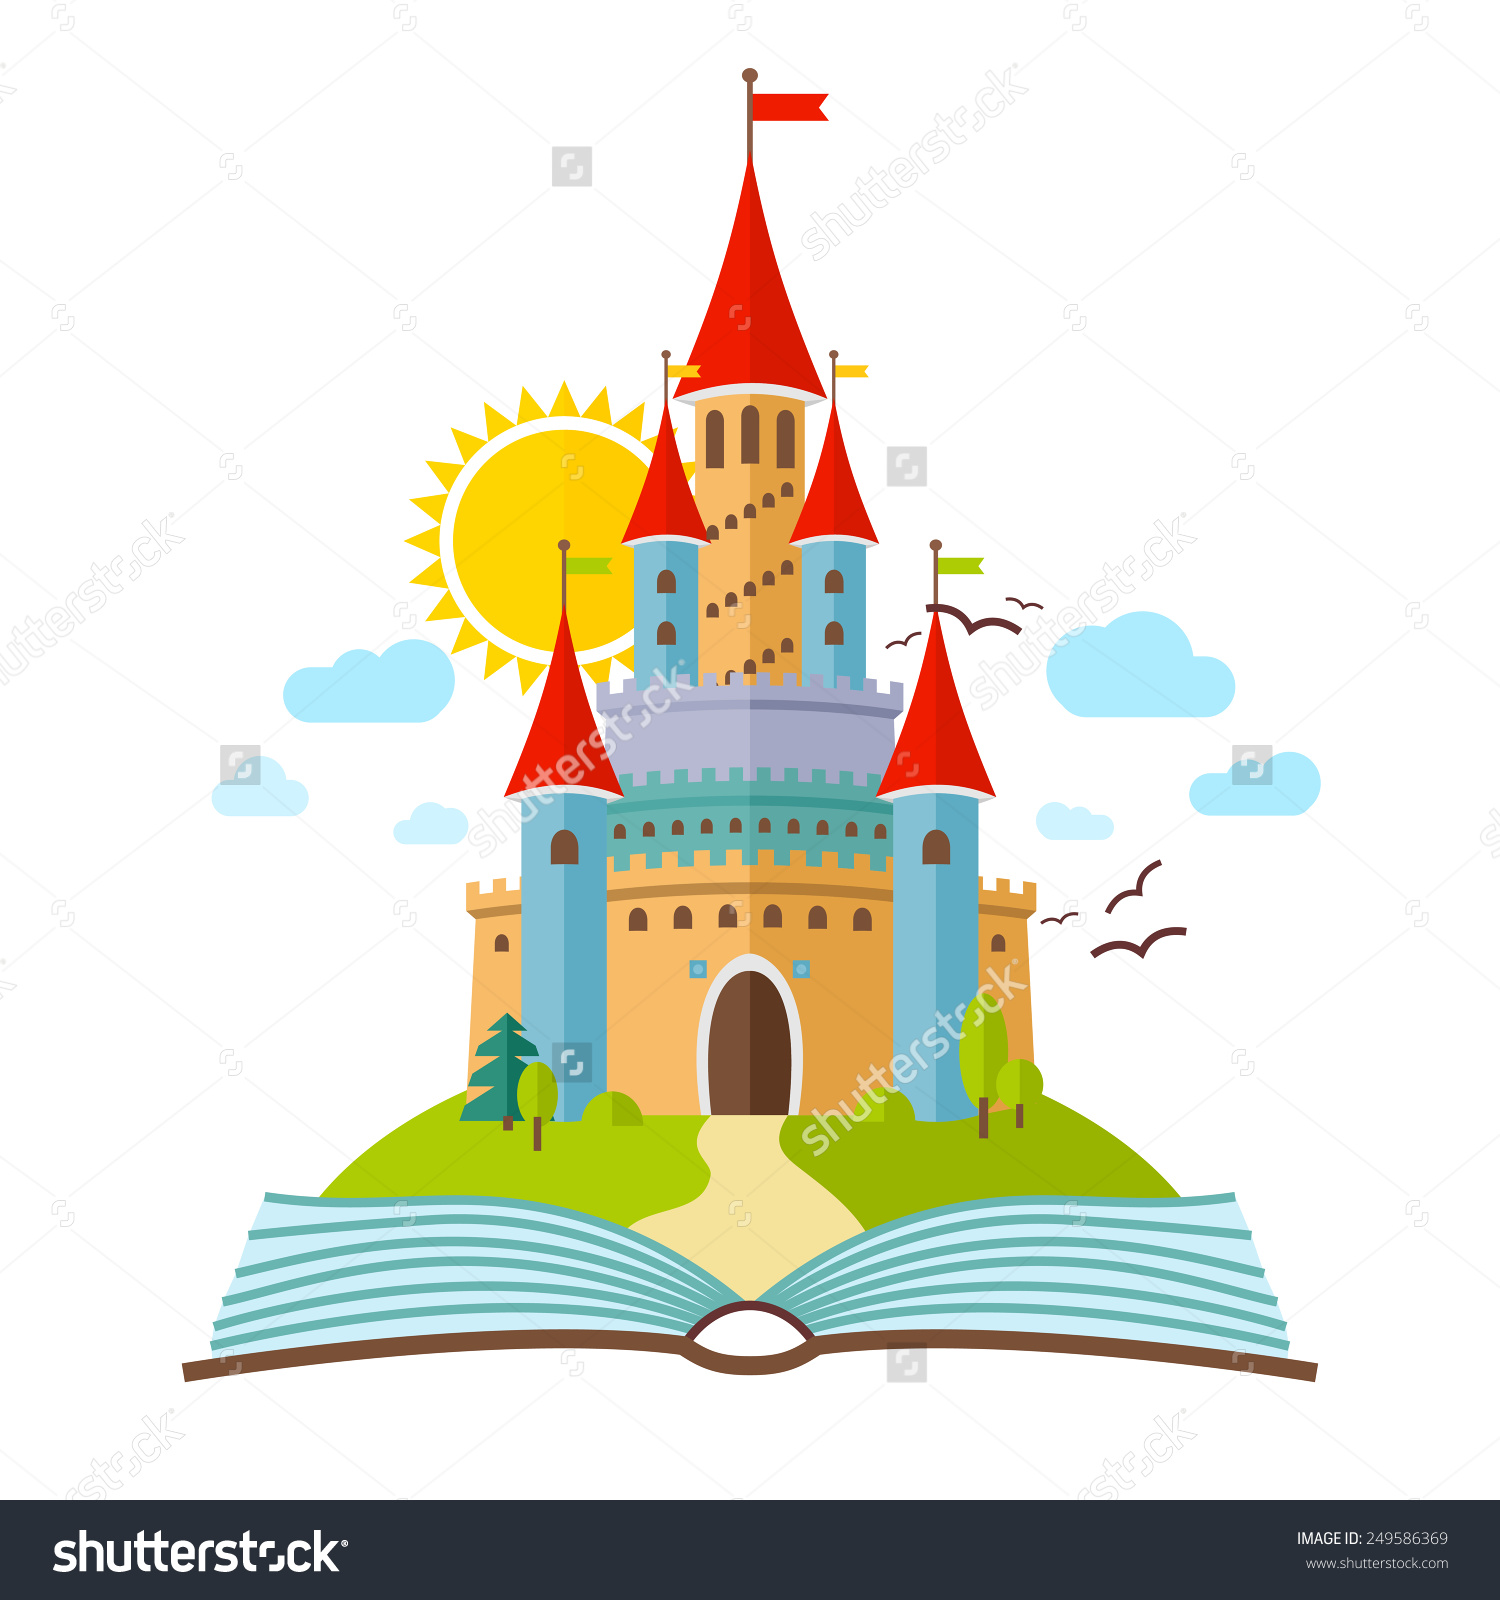 Fairytale Castle Vector Flat Child Illustration Stock Vector.